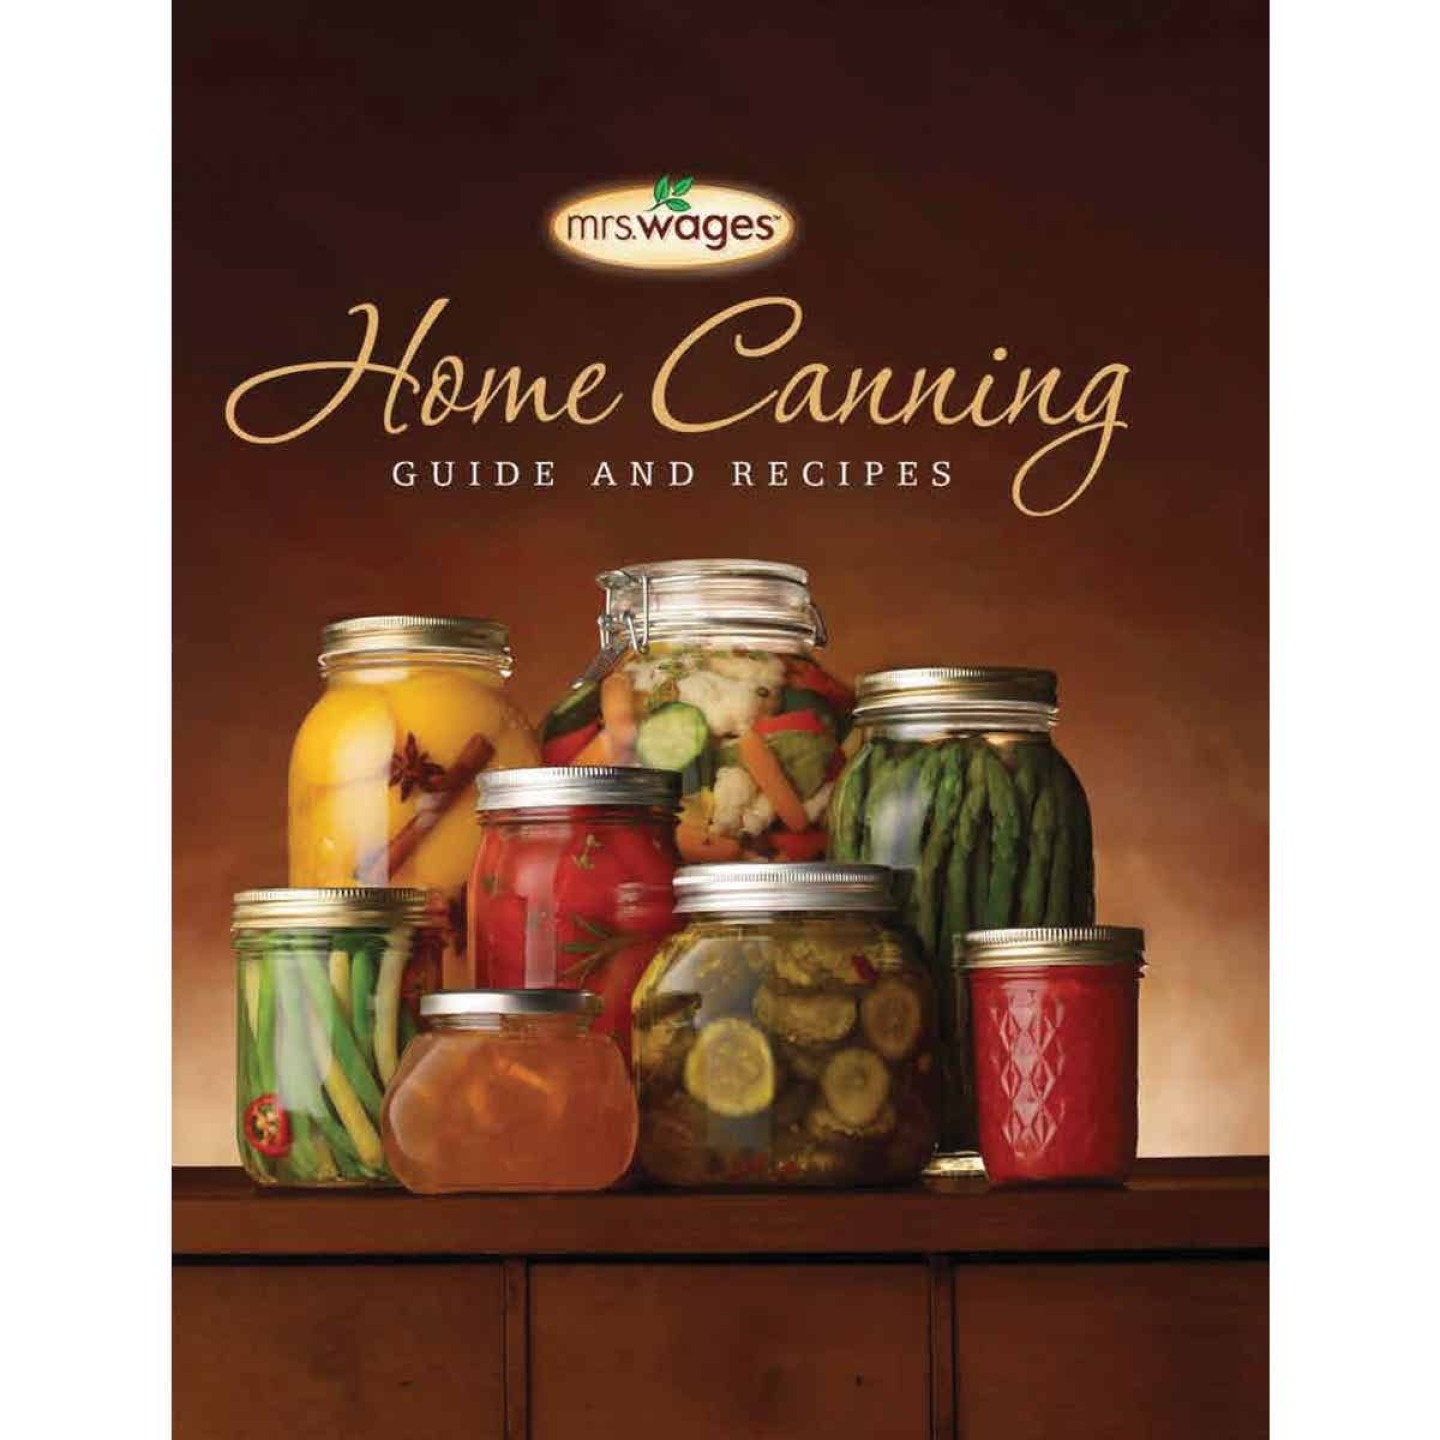 Mrs. Wages Home Canning Guide Book & Recipes Image 1